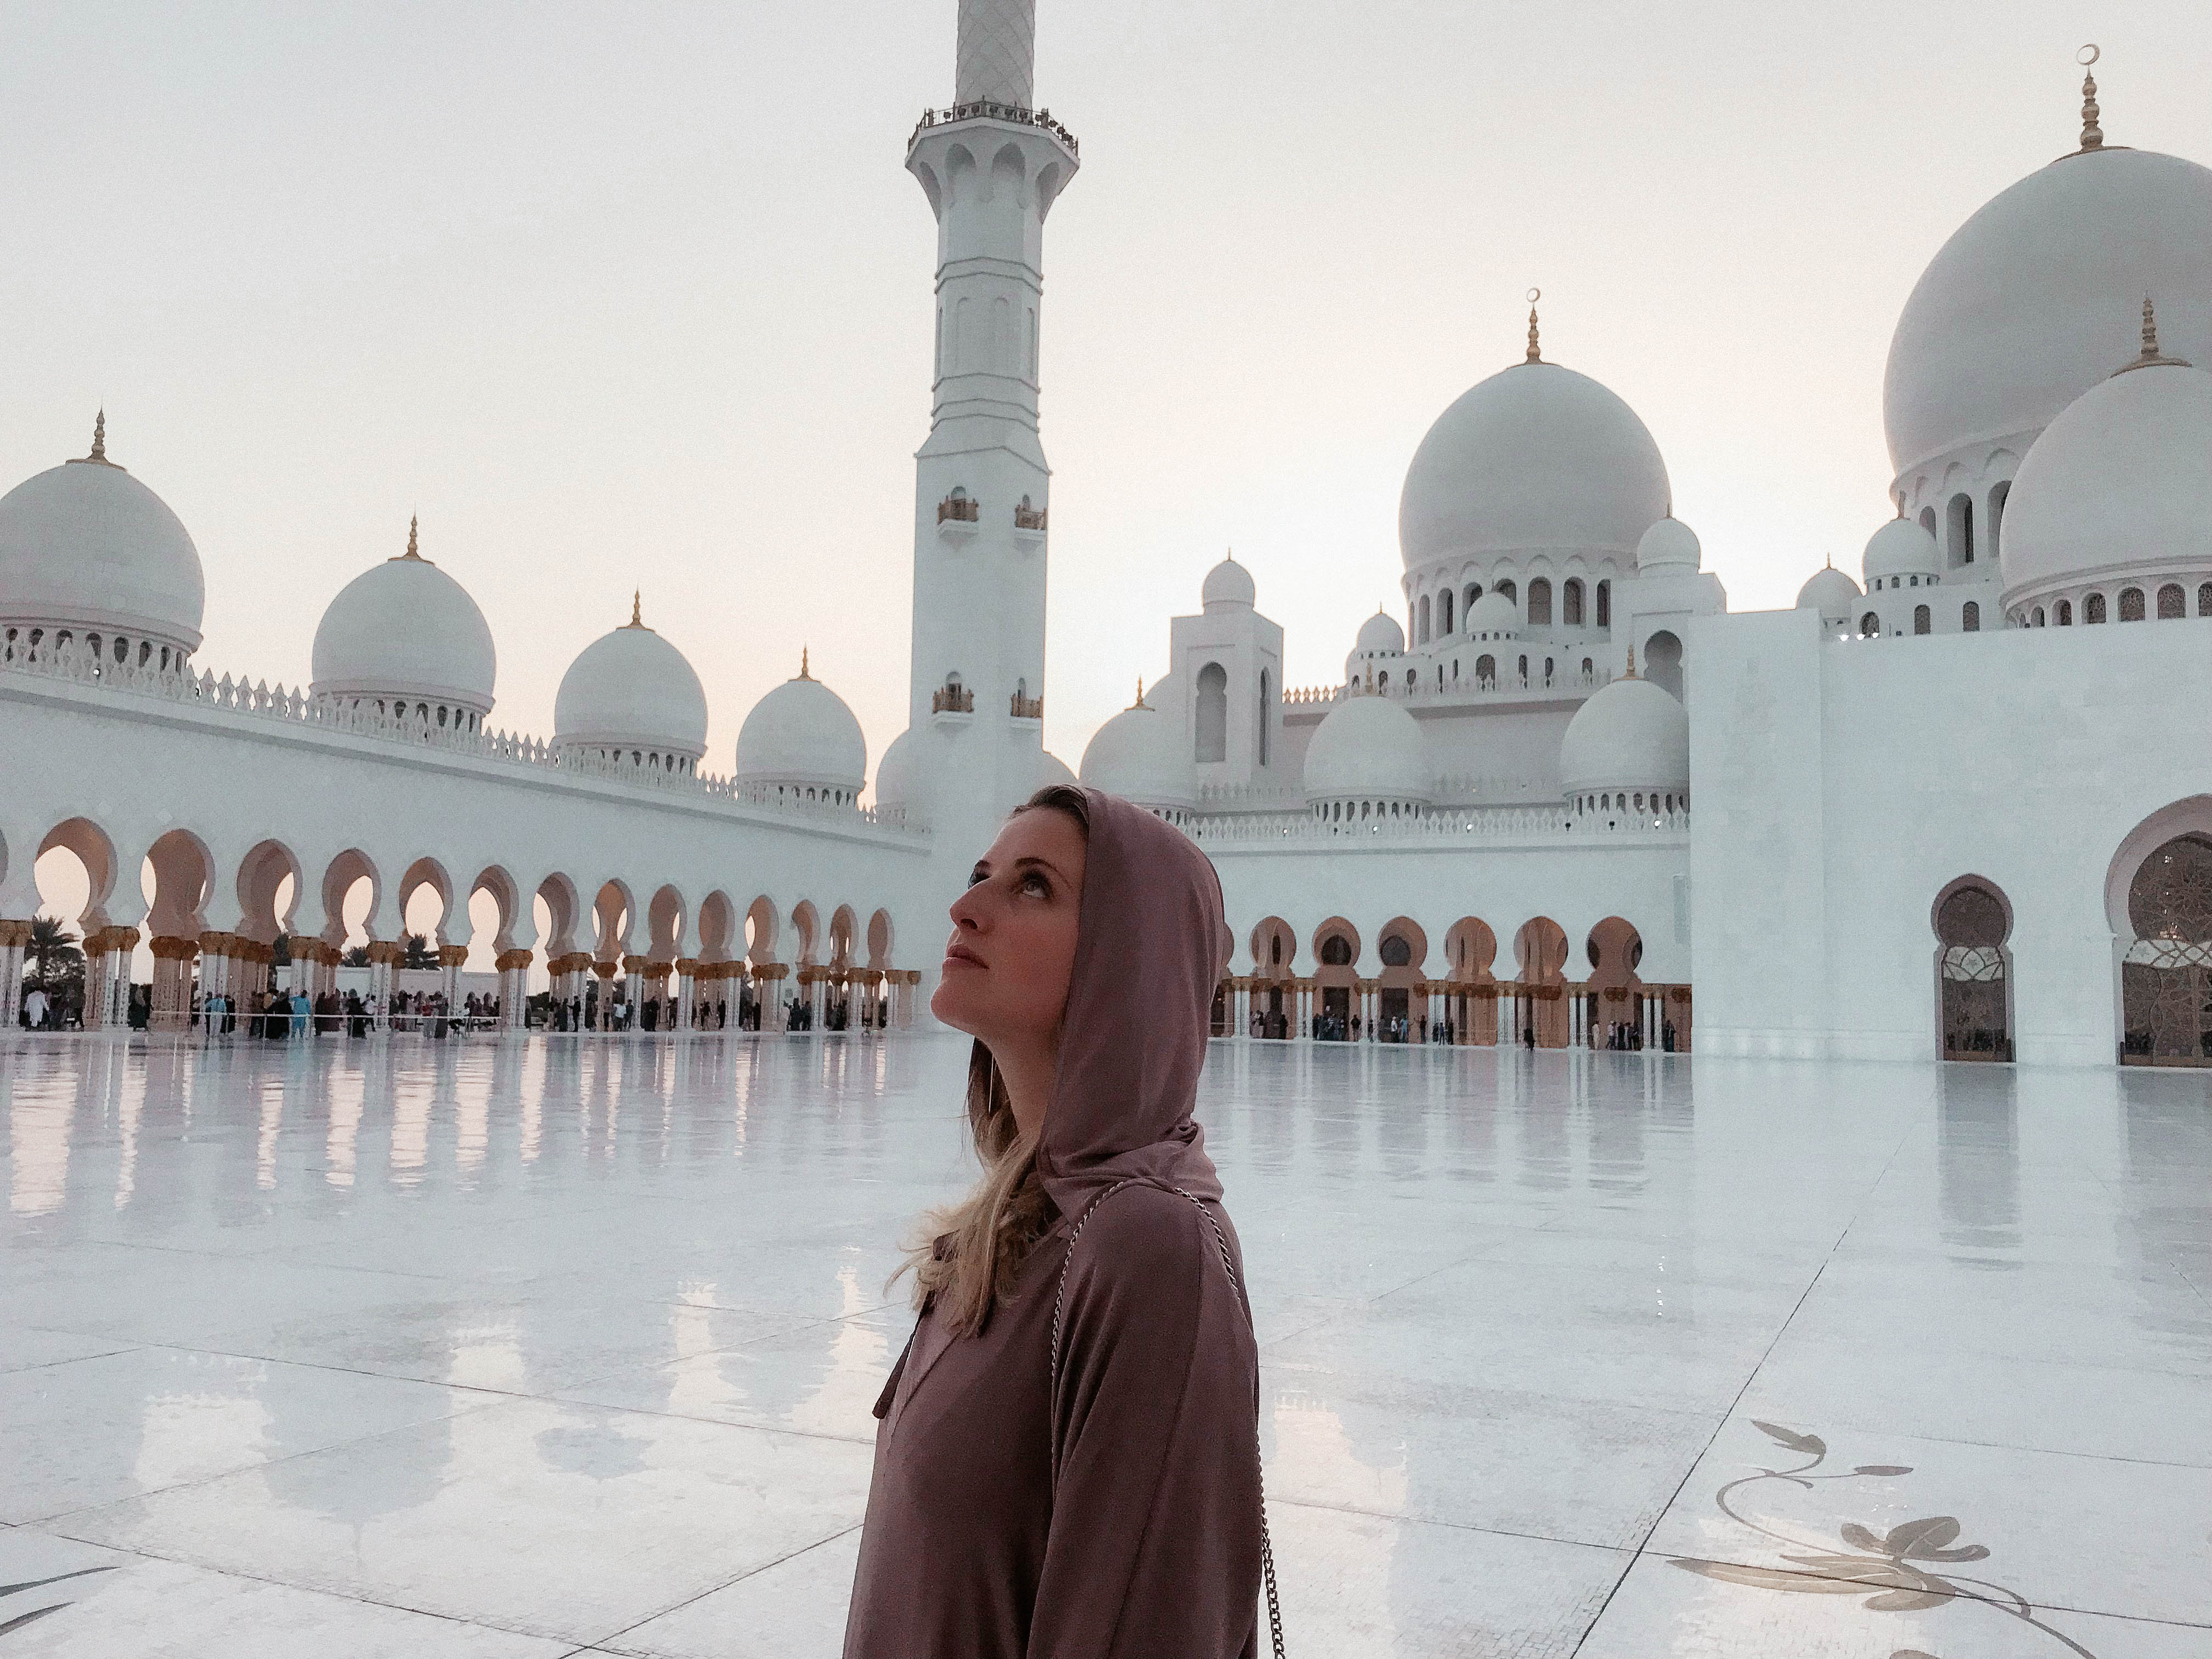 48 HOURS IN ABU DHABI // FLIGHT ATTENDANT LAYOVER